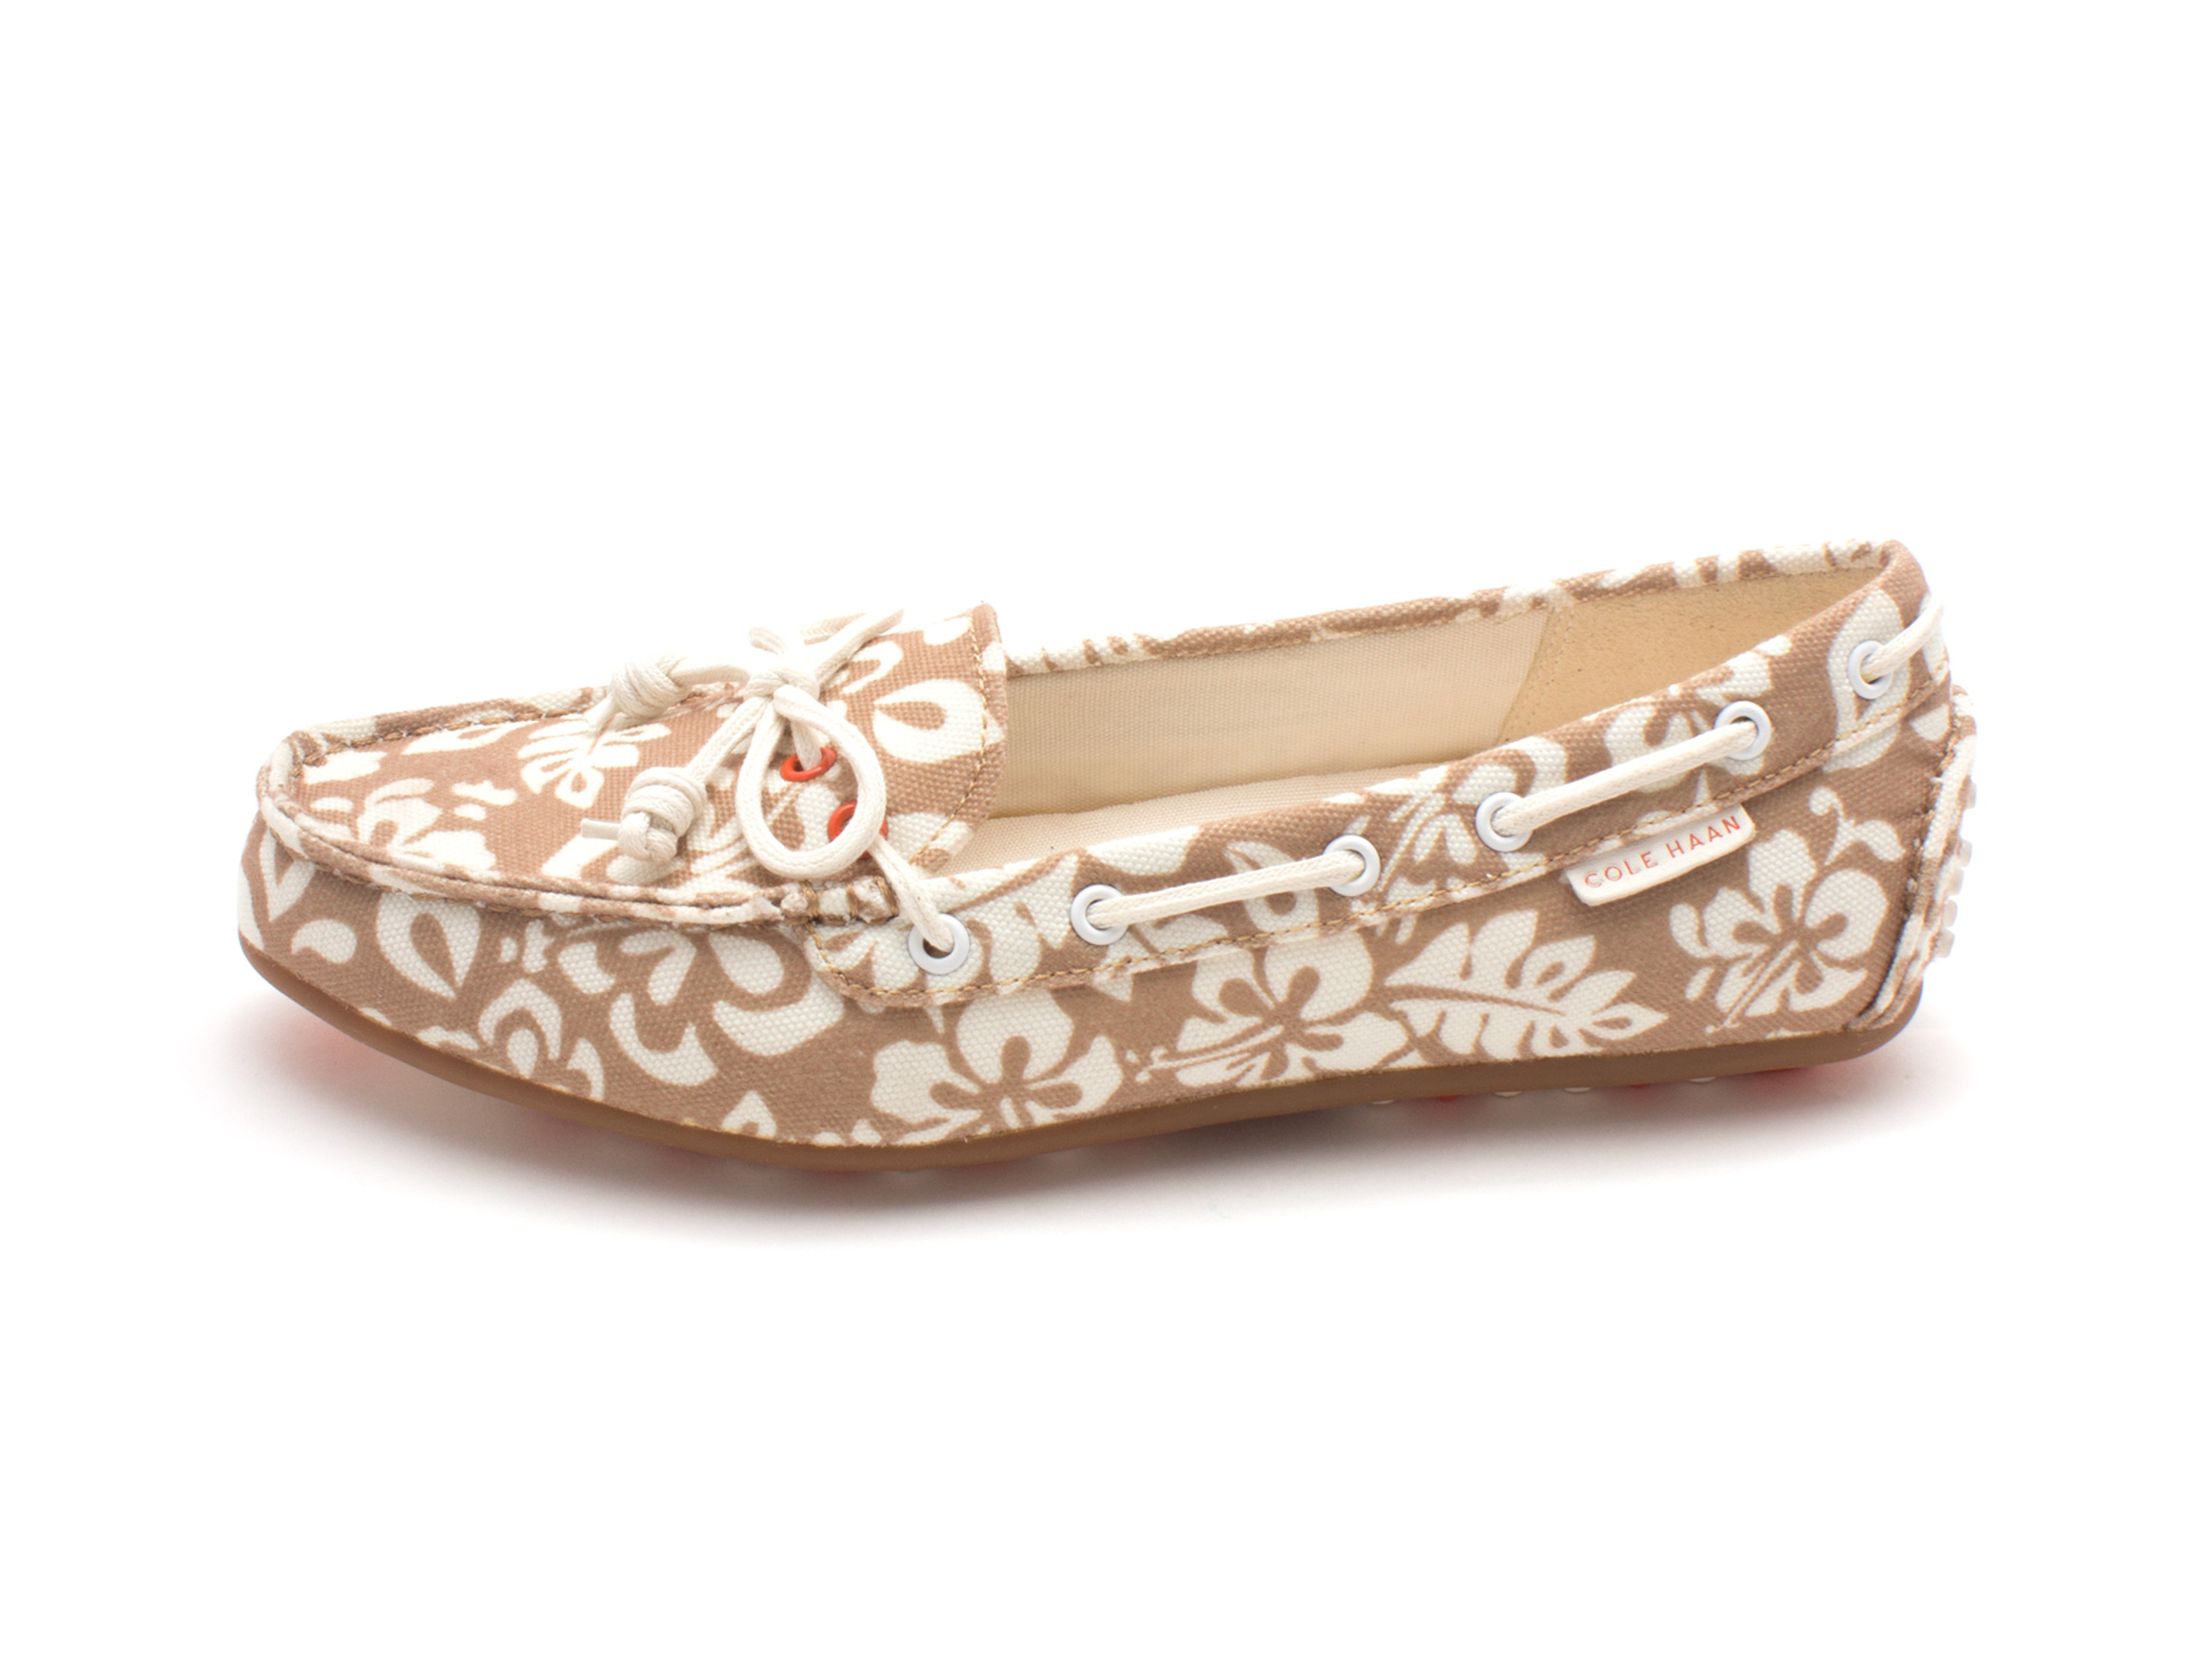 Cole Haan Womens Diannesam Closed Toe Boat Shoes, Tan/White Flowers, Size 6.0